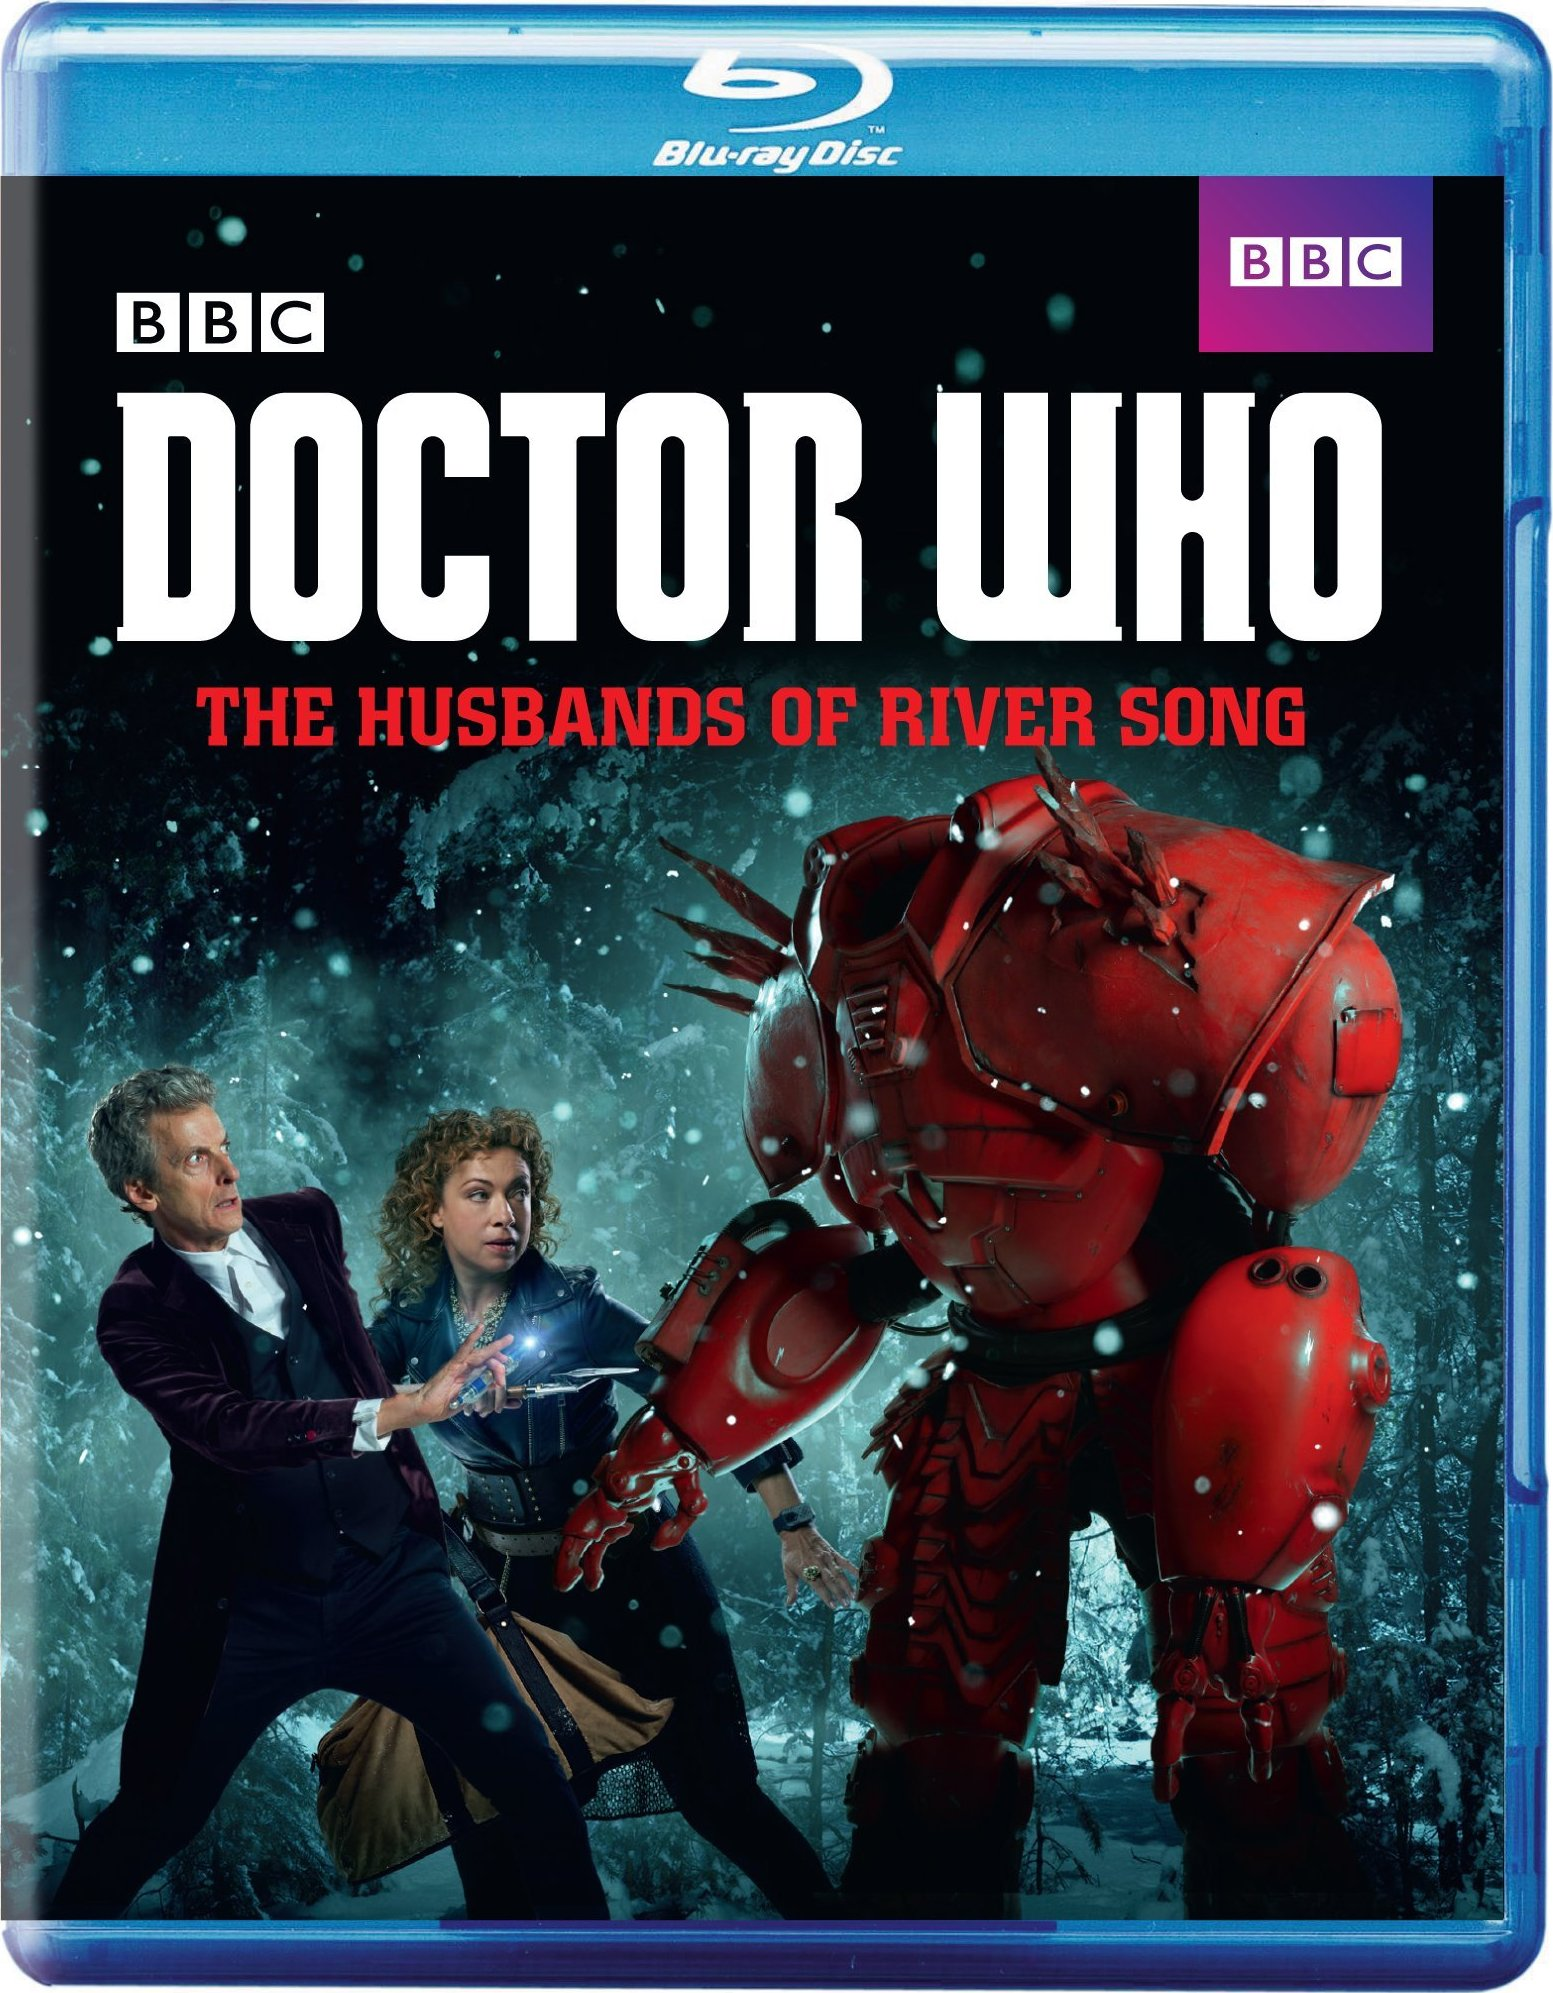 Doctor Who: The Husbands of River Song (TV) (2016) Blu-ray